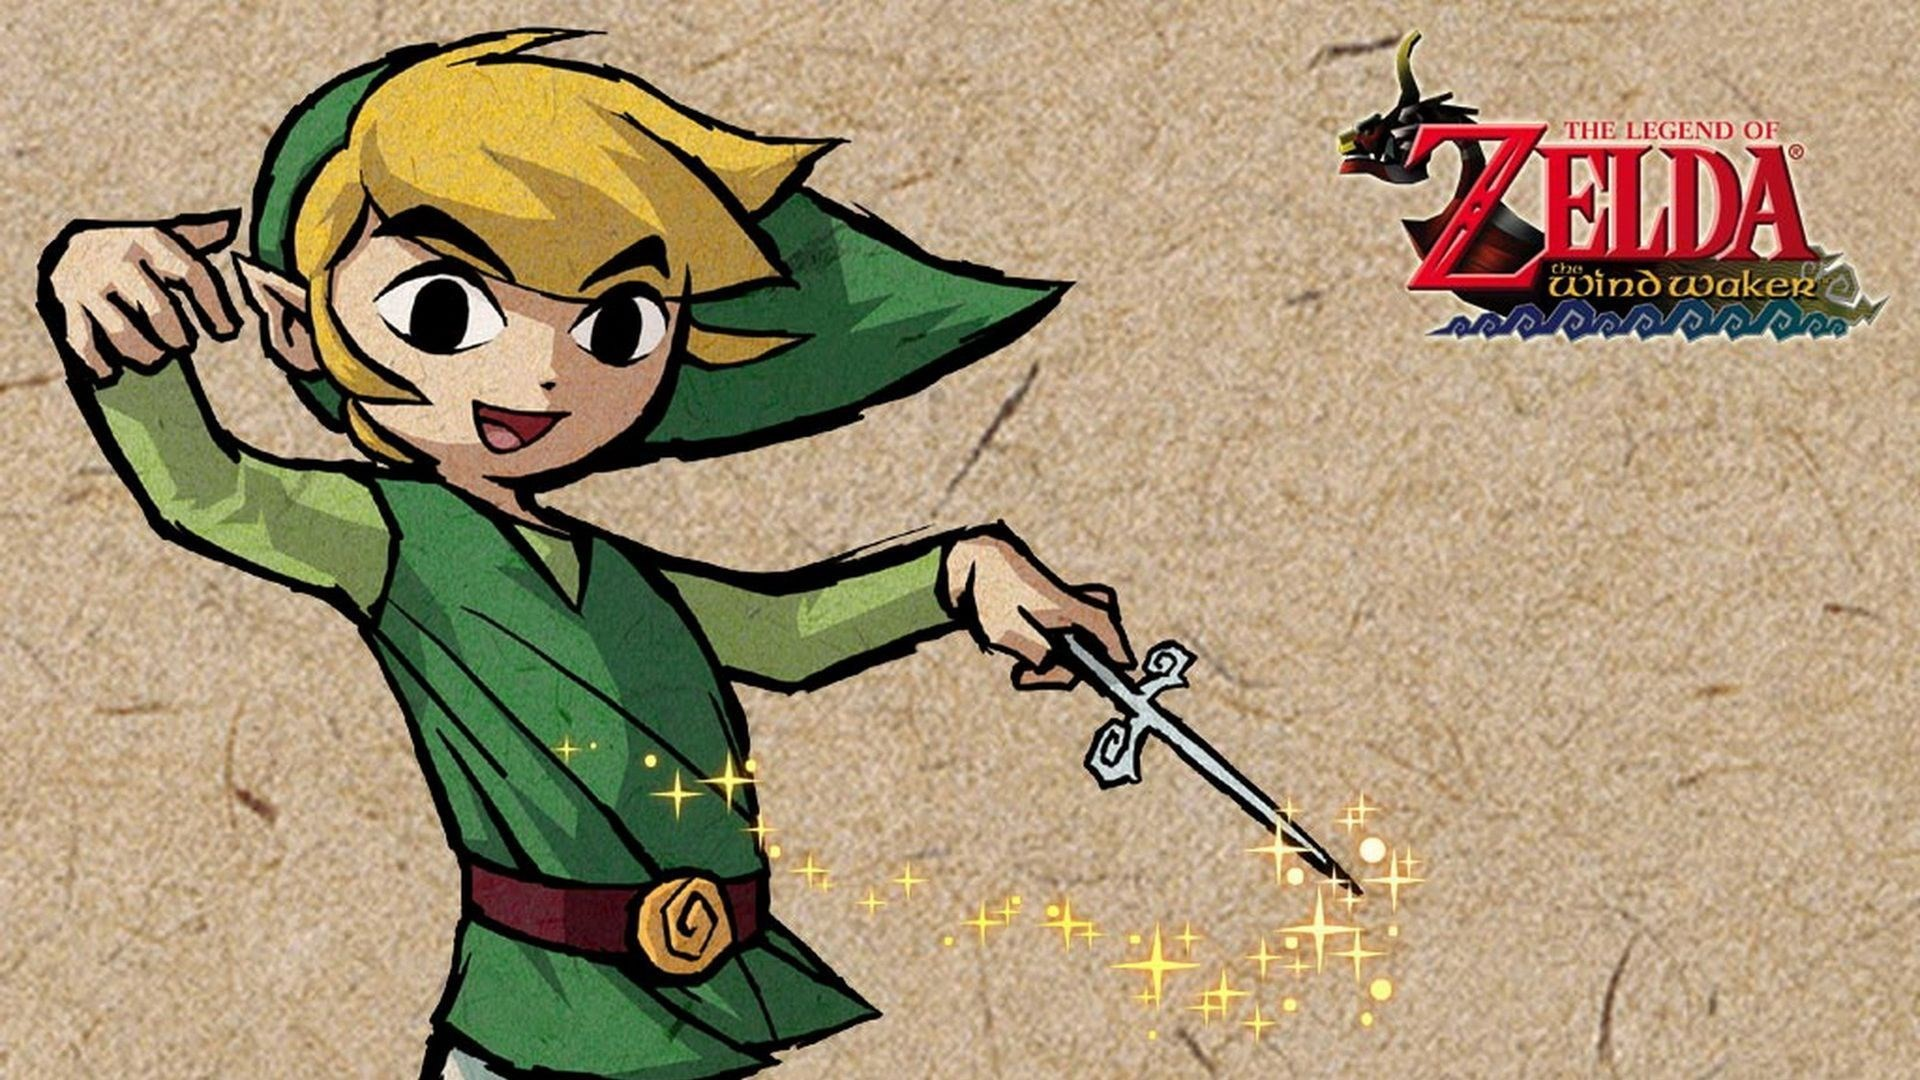 the legend of zelda the wind waker wallpapers 1080p high quality,  (425 kB